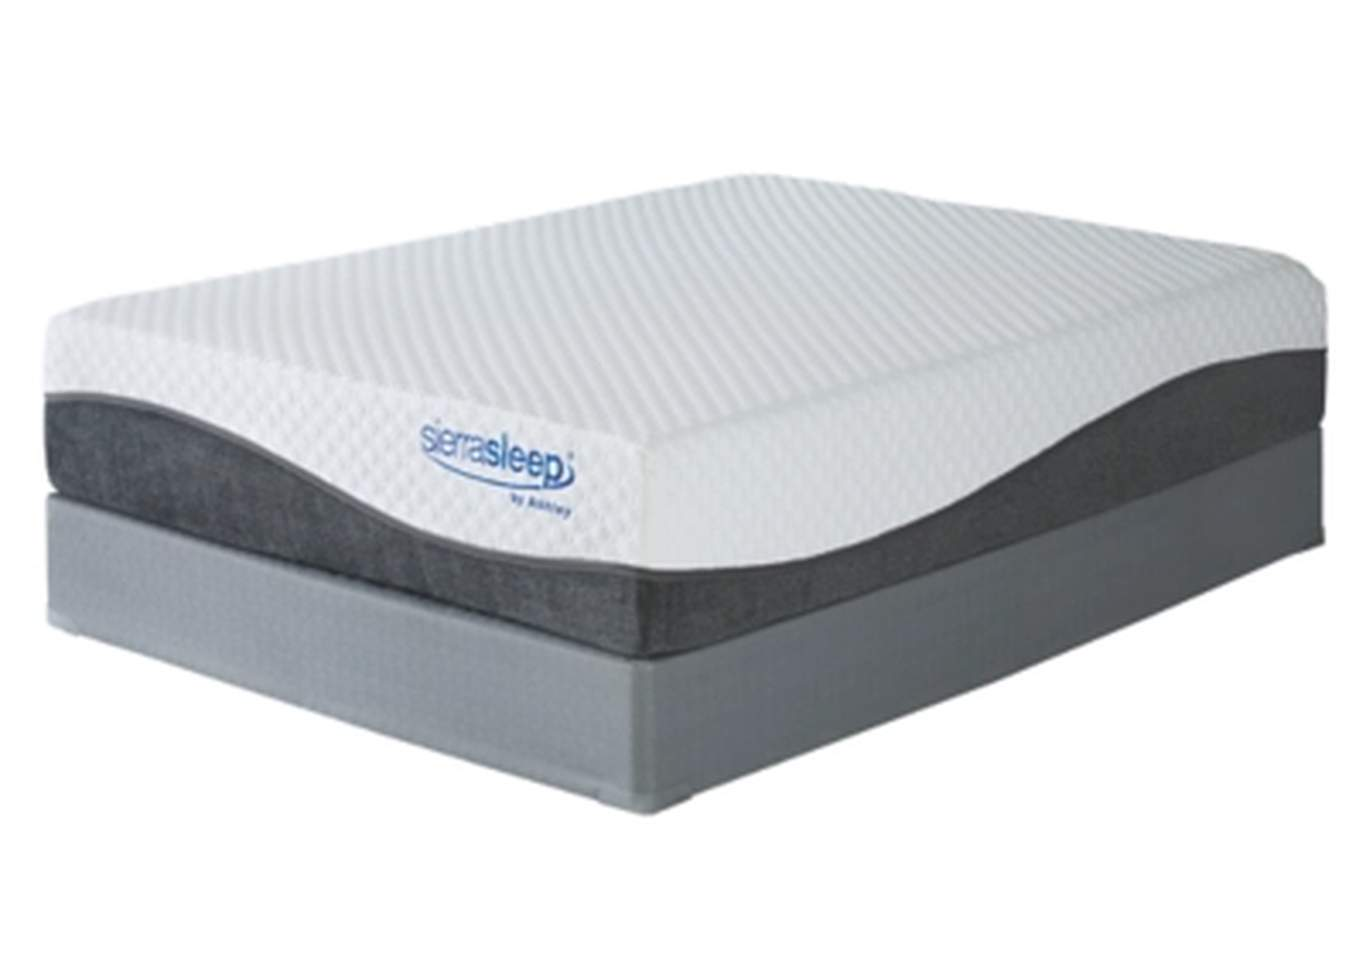 Mygel Hybrid 1300  Queen Mattress,Sierra Sleep by Ashley